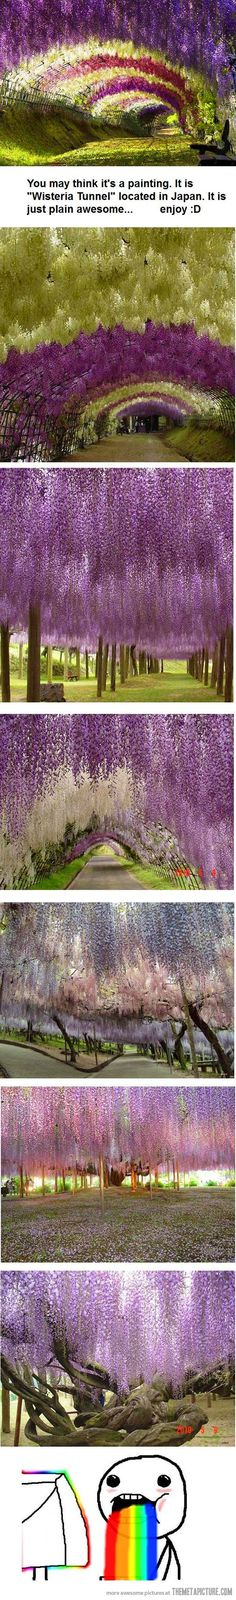 wisteria tunnel- japan